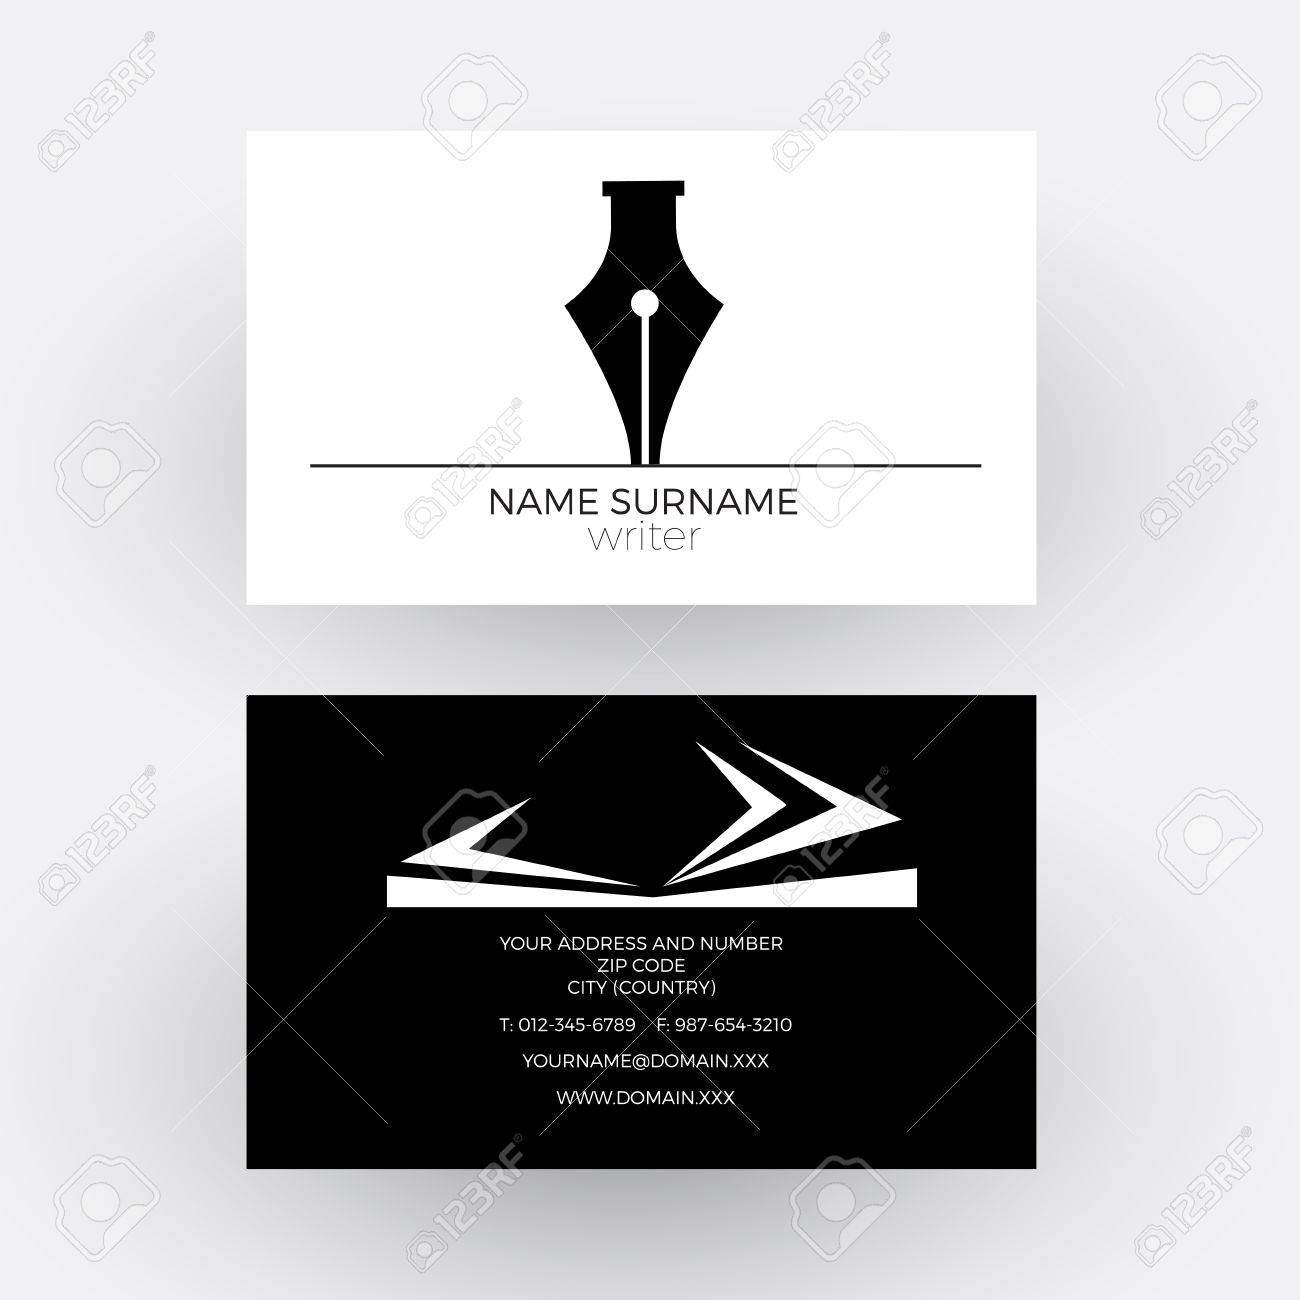 abstract fountain pen concept of writer business card royalty